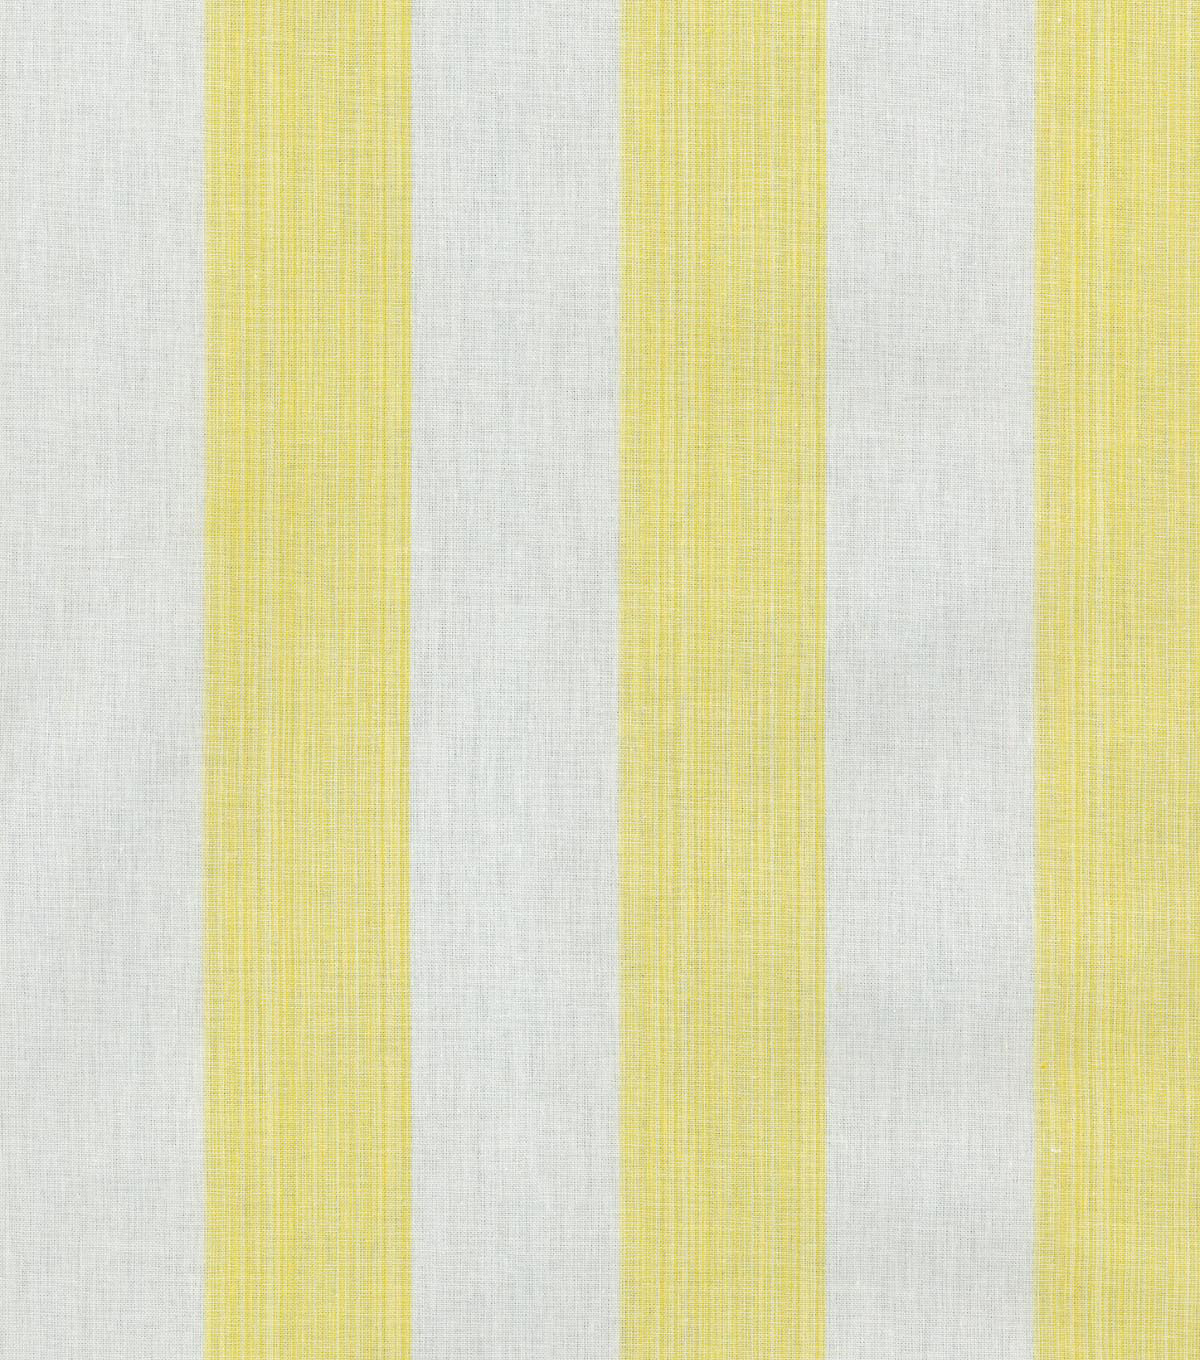 Home Decor 8\u0022x8\u0022 Swatch Fabric-Williamsburg Stratford Stripe Sunshine